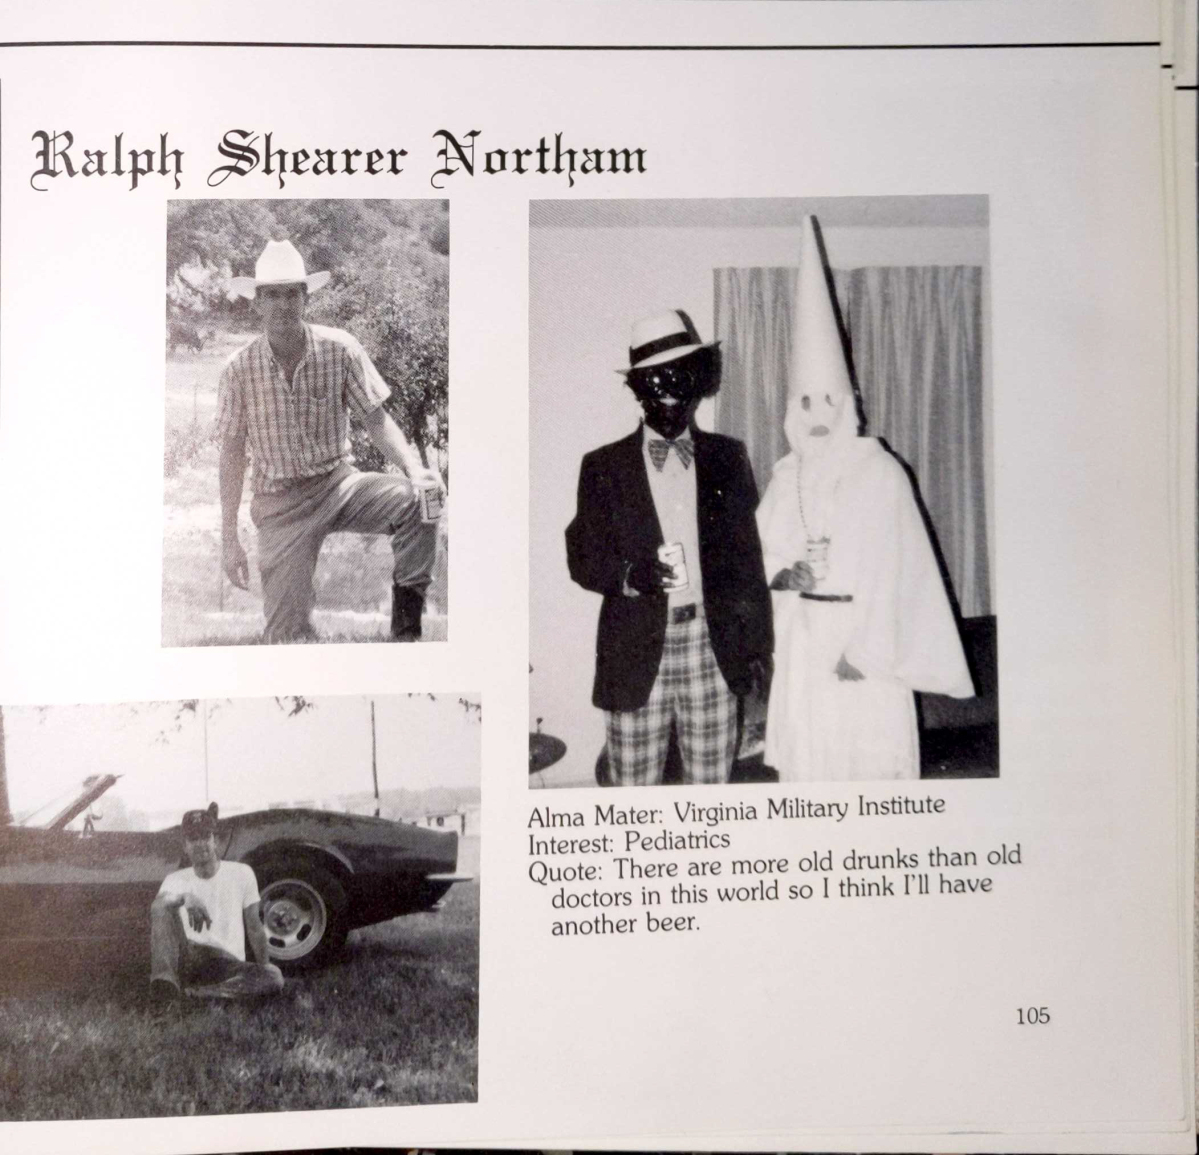 Va. Gov. Northam insists he is not in racist photo, admits past 'mistakes' but says he won't resign - Portland Press Herald